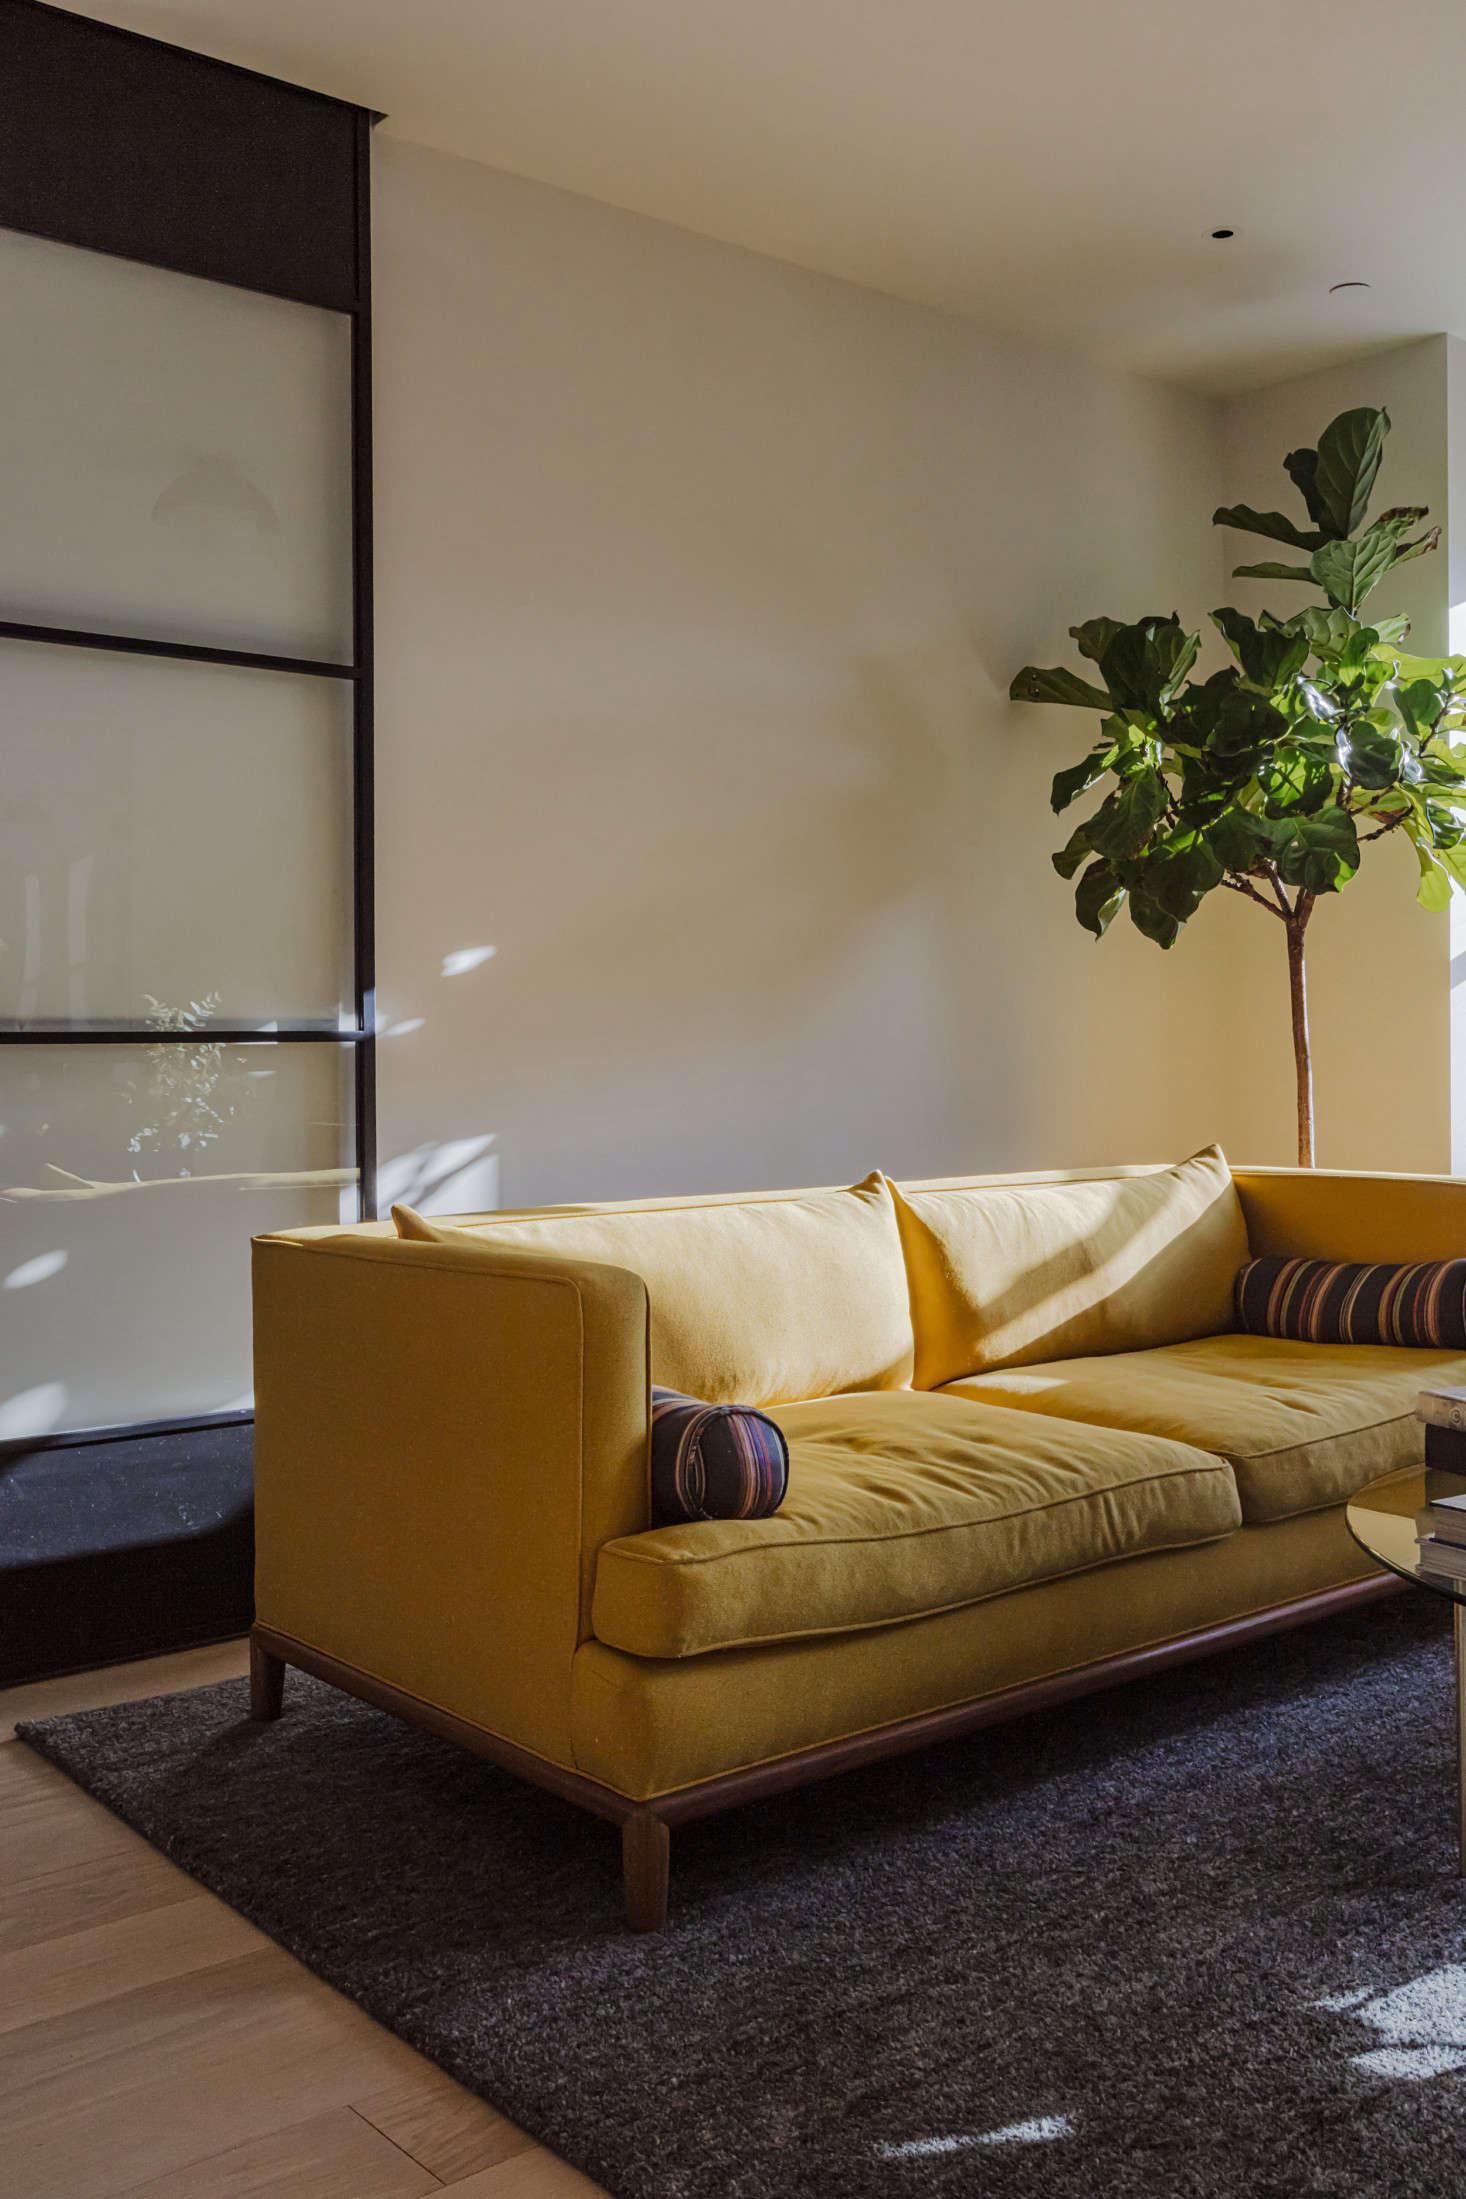 The story behind the unexpected marigold couch? Sandy, the owner, requested some color. Says Andrea: &#8